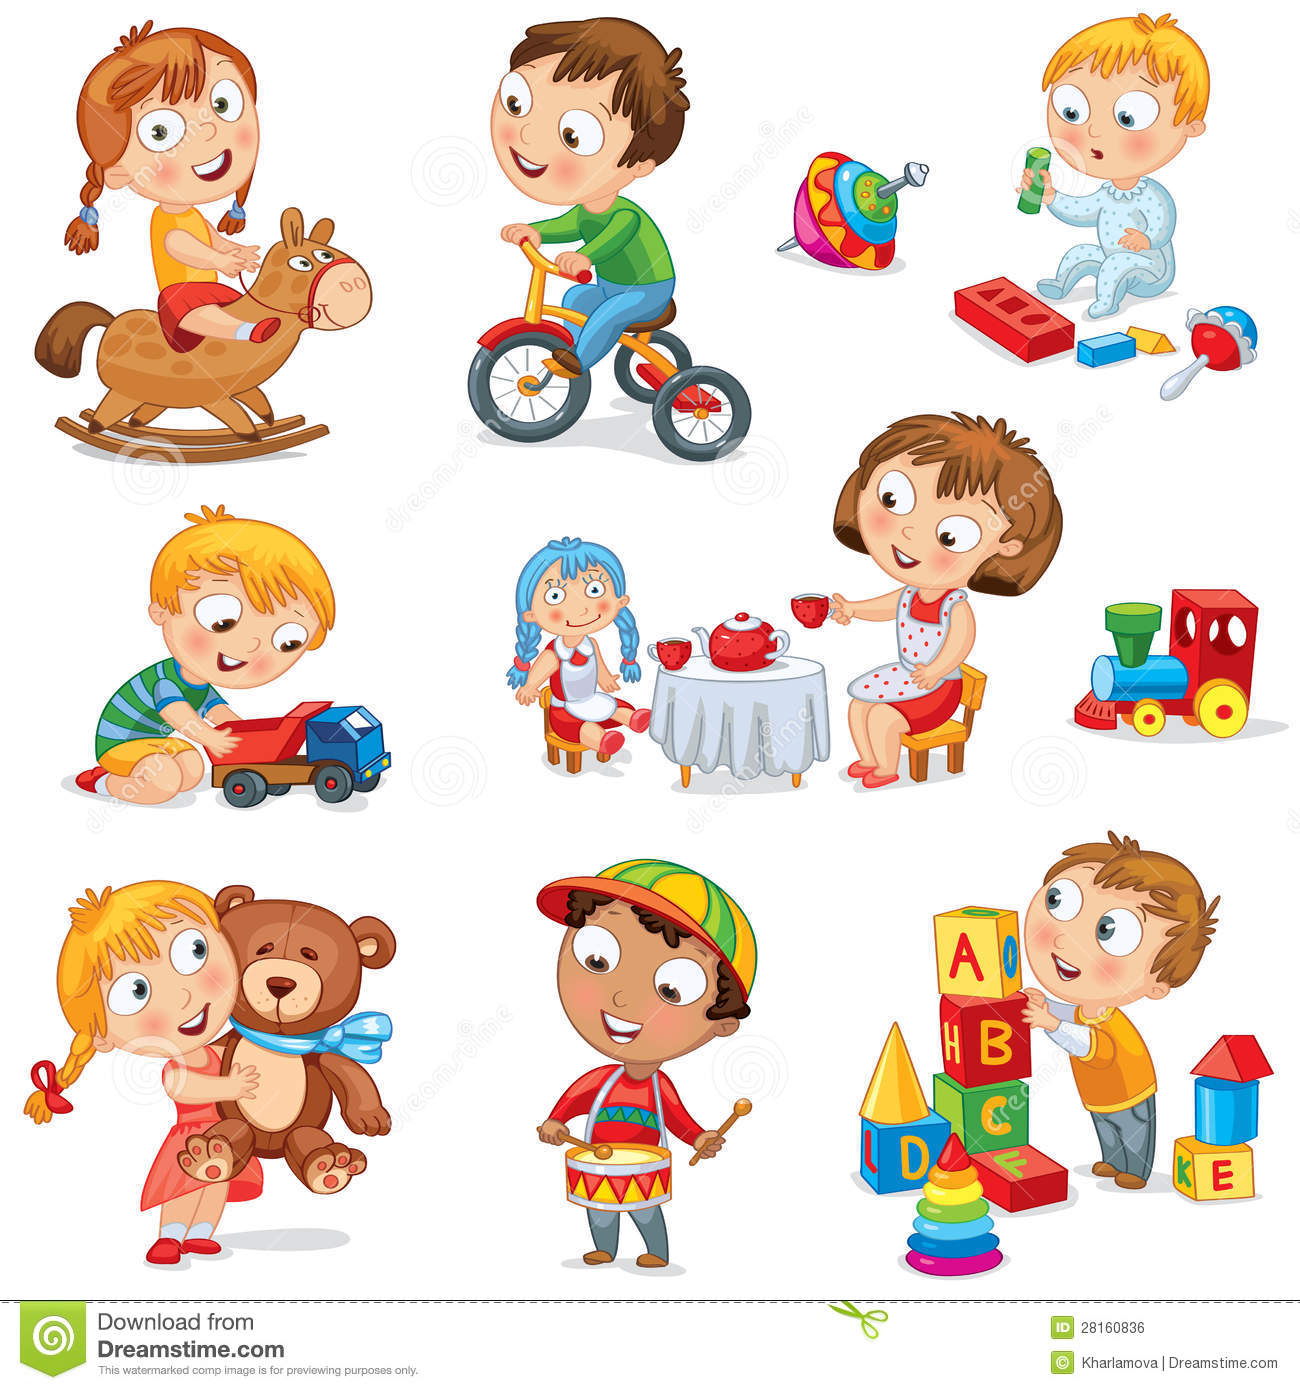 Play Toys Com : Children play with toys royalty free stock image